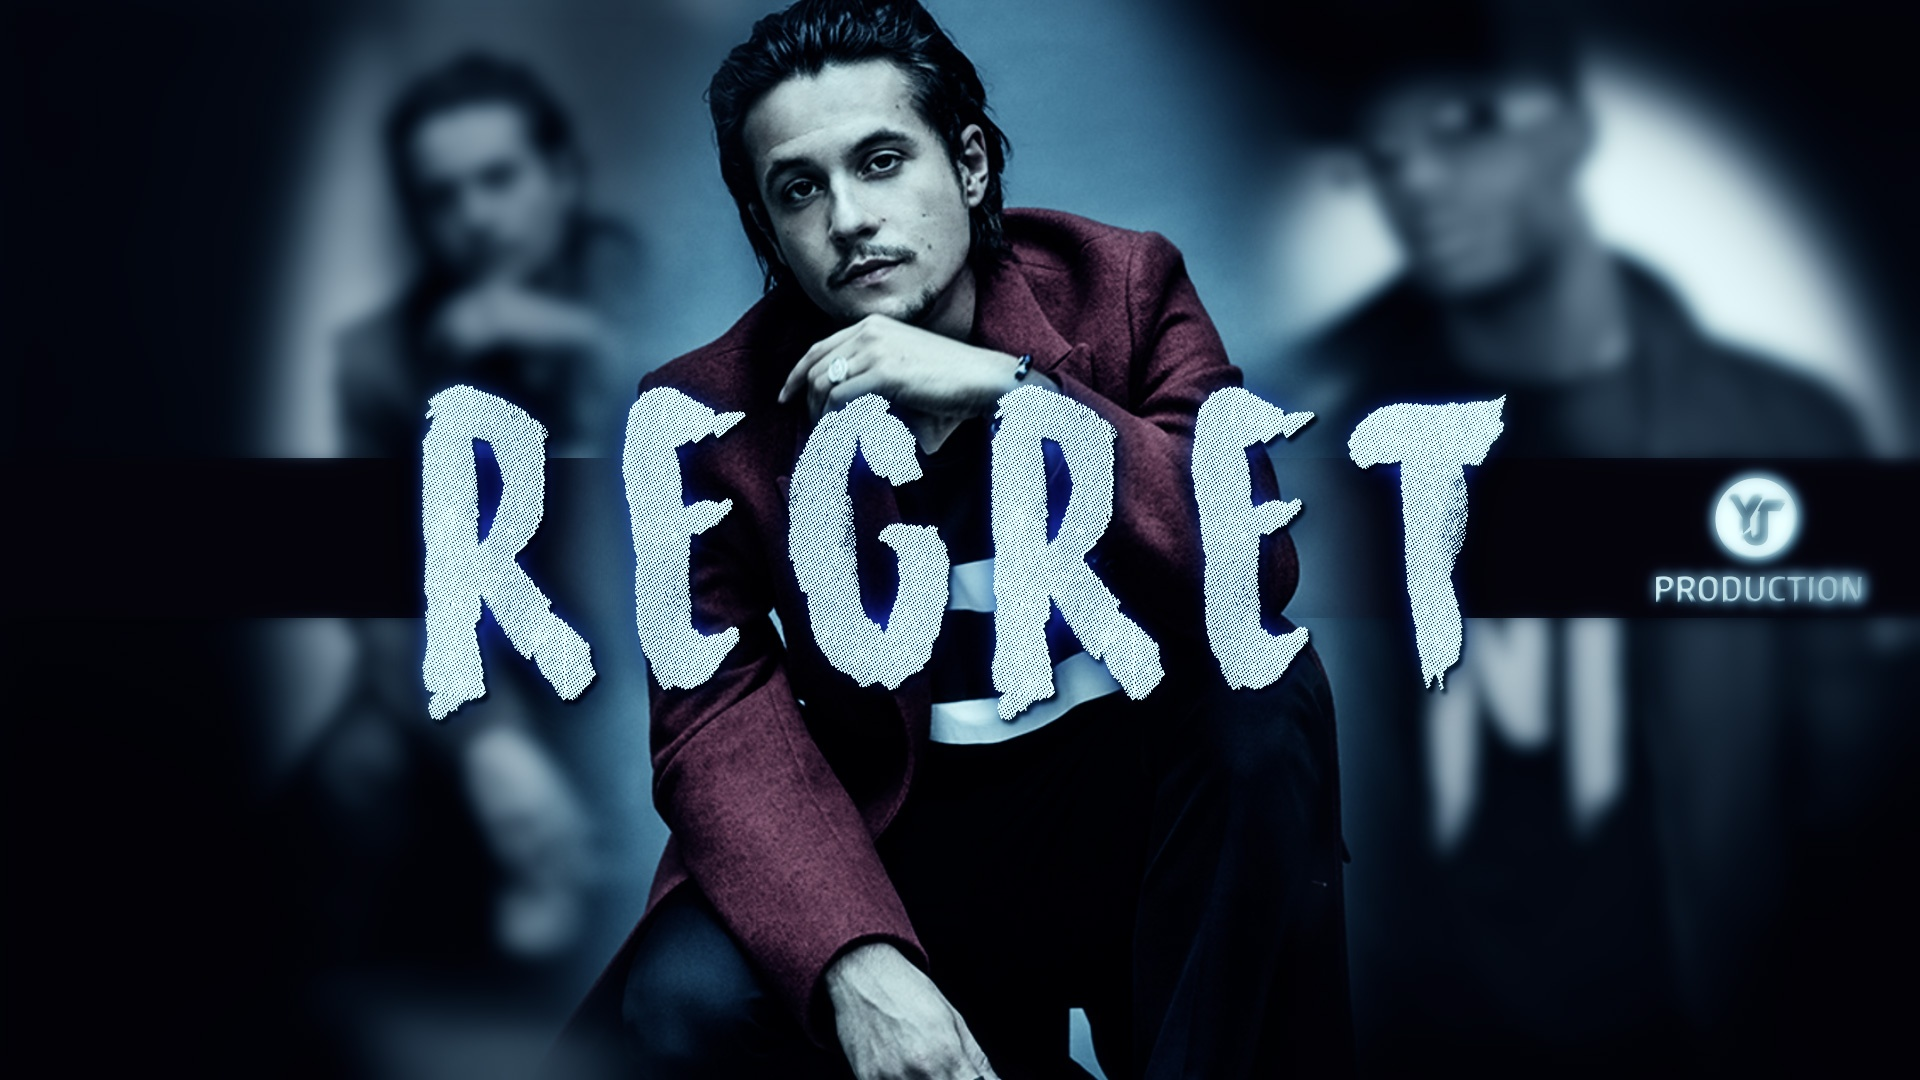 REGRET | YJ Production